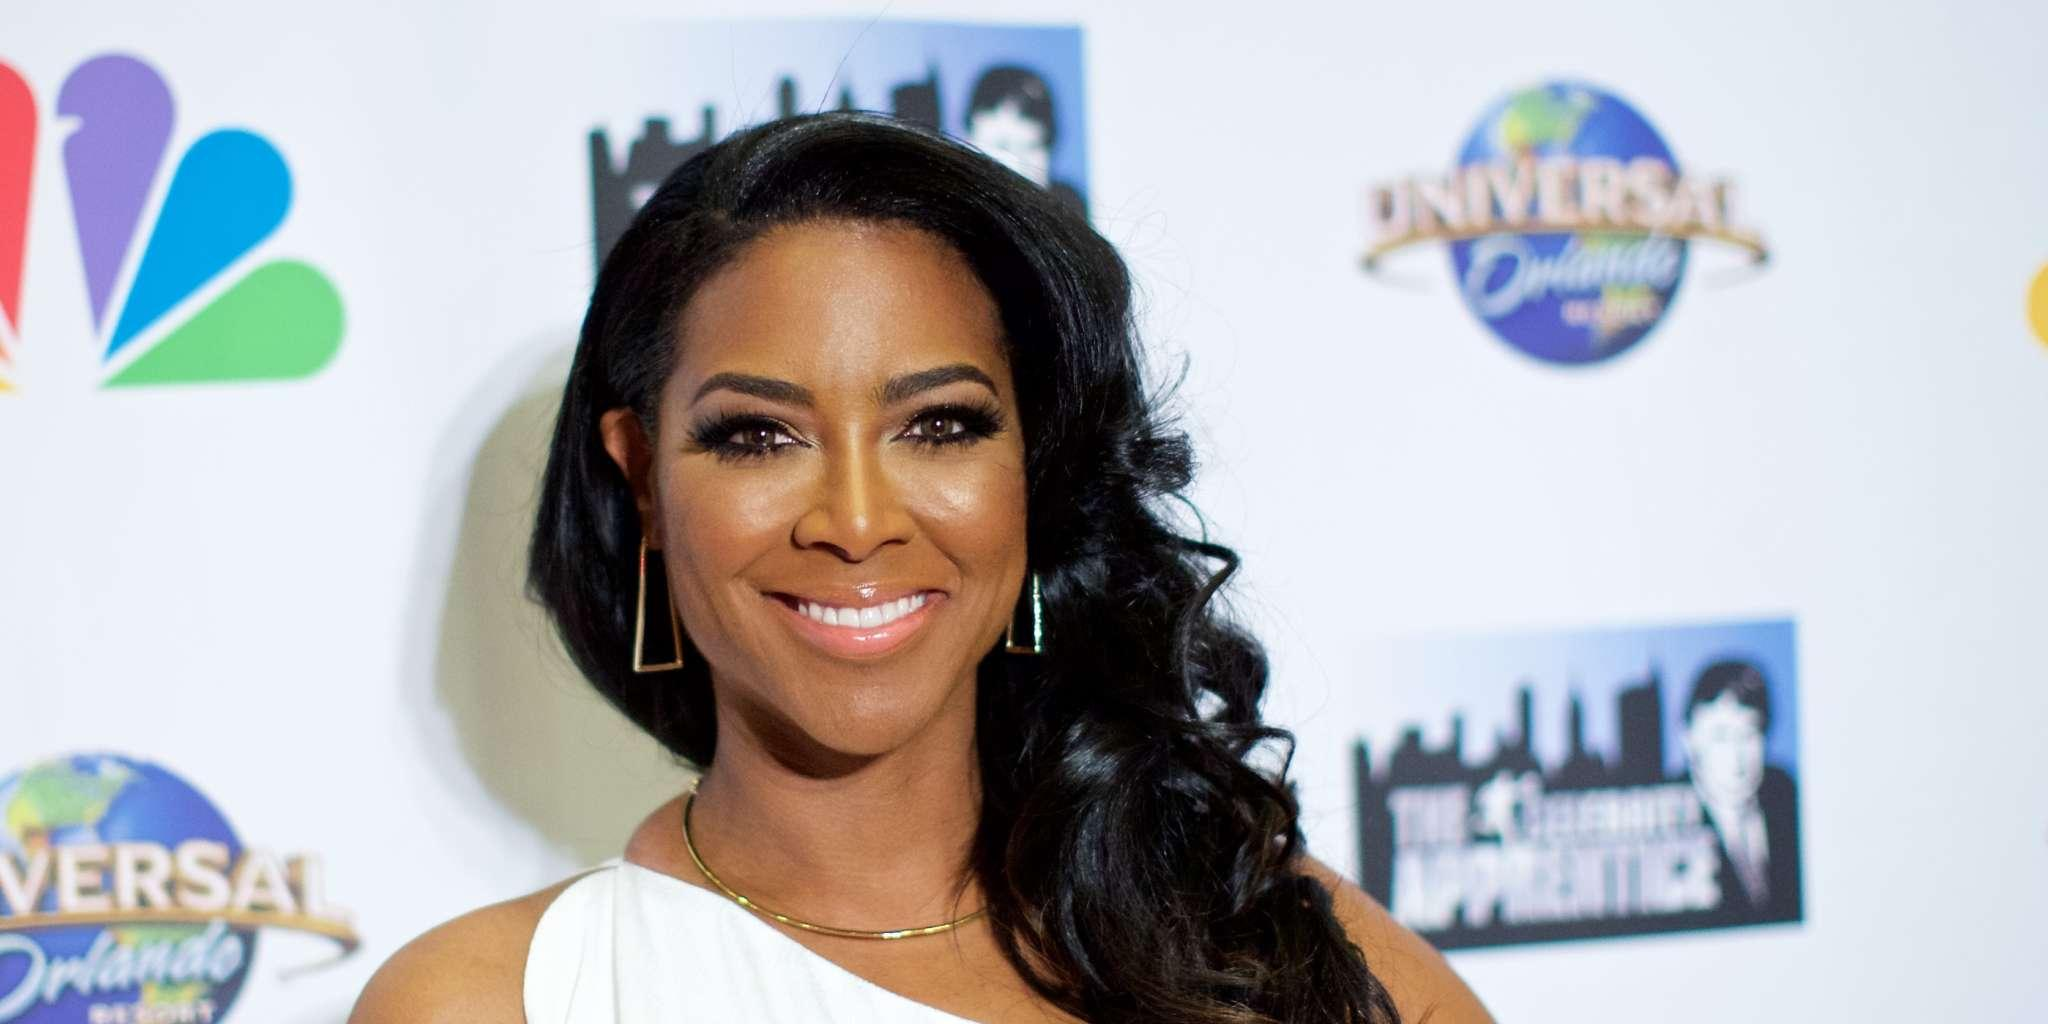 Kenya Moore Is Booked And Busy - Here's Her Schedule For The Next Few Days